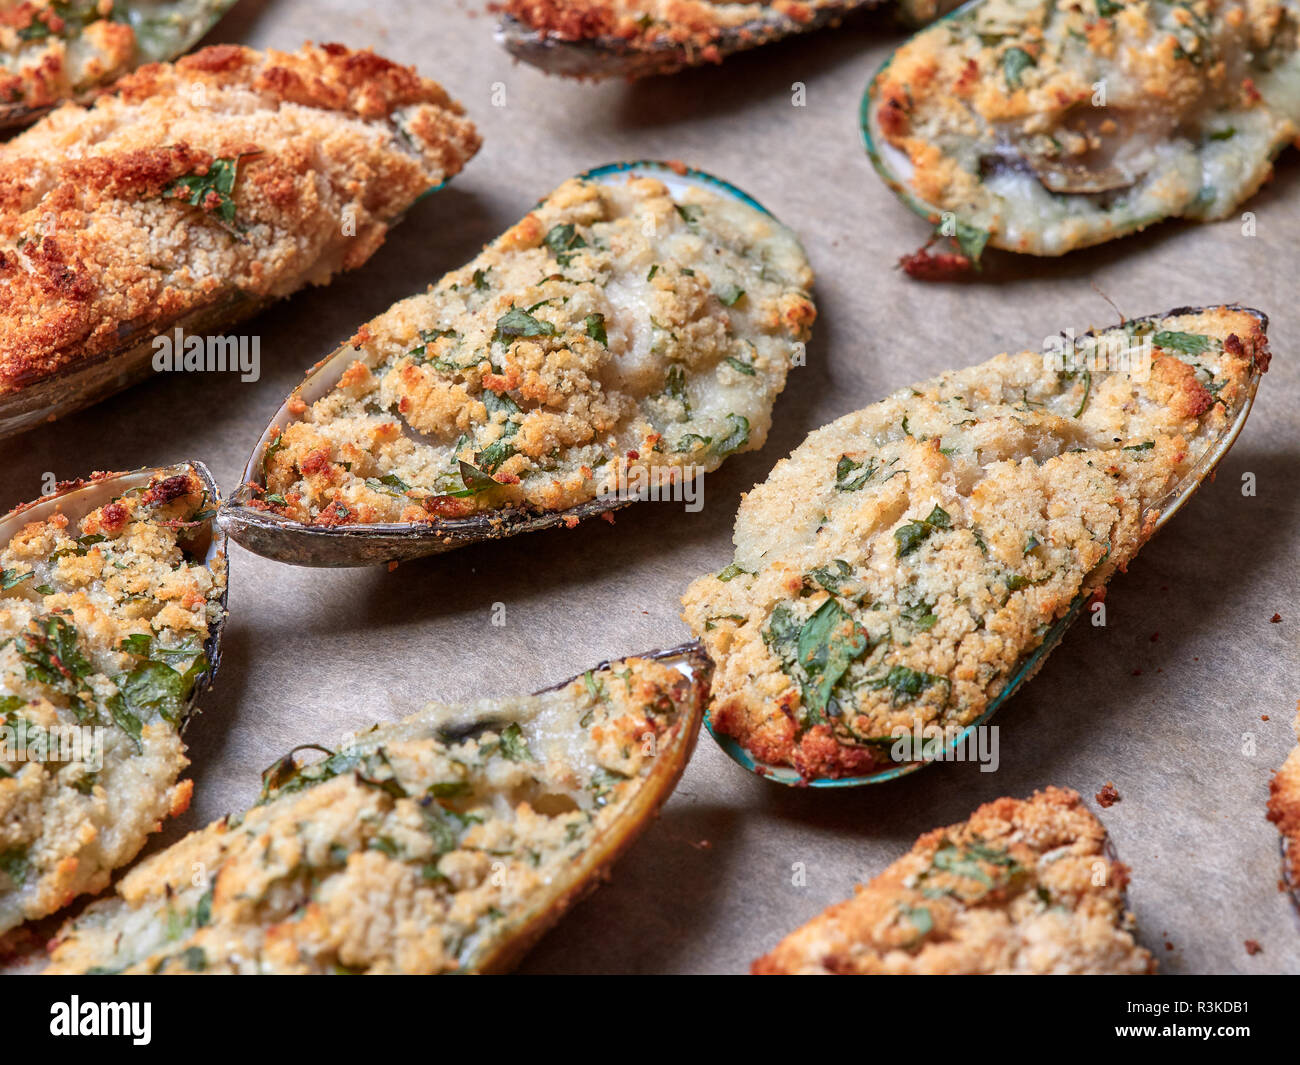 Closeup view of a tray of delicious mussels au gratin, just taken out of the oven - Stock Image